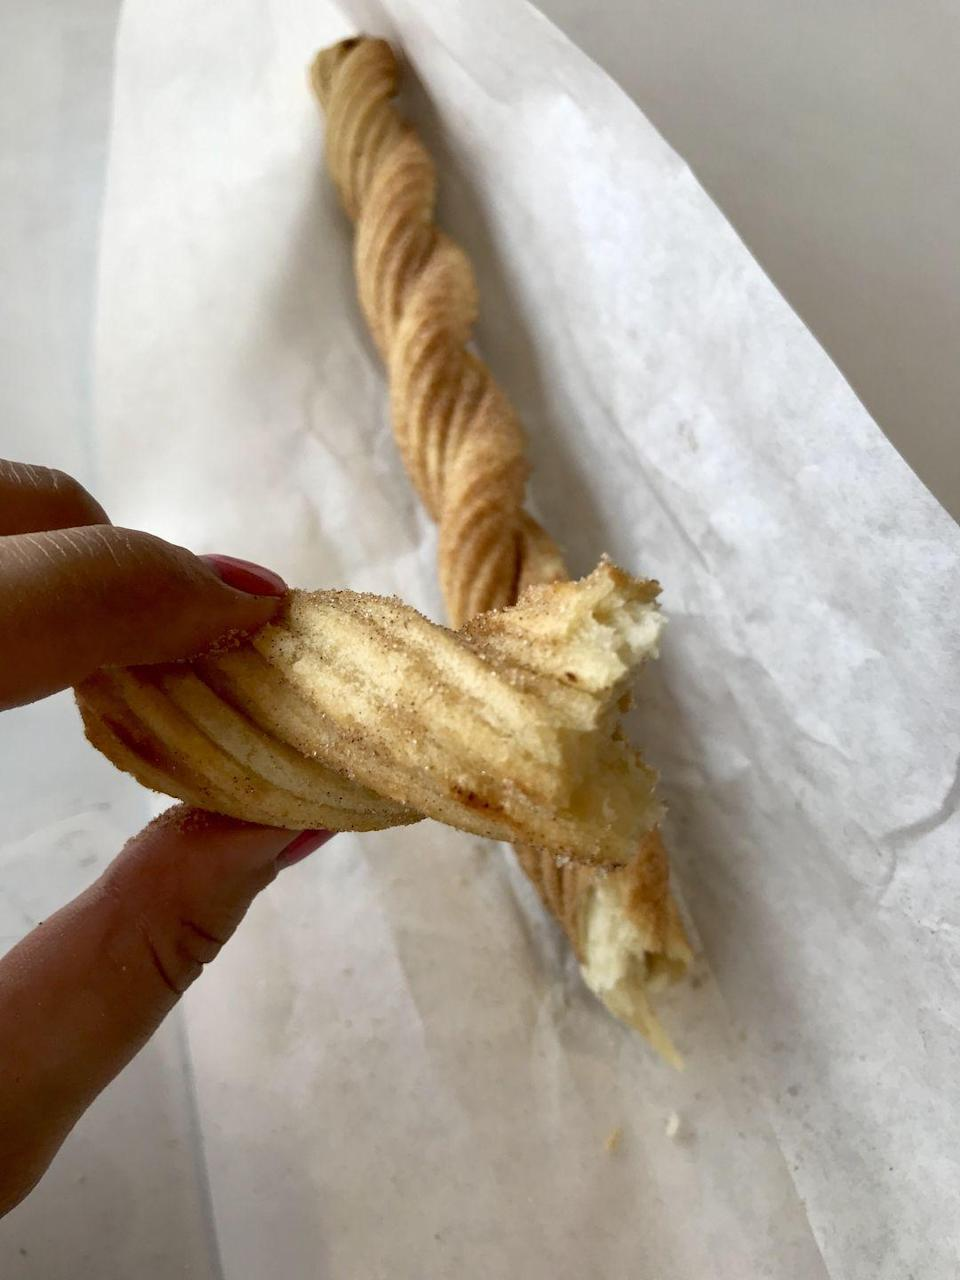 <p>First of all, the churro is CRAZY long, especially for just $1. This one is soft on the inside and fairly crispy on the outside. I wish there was more cinnamon covering it, and I reaaaally wish there was something to dip it in!</p>